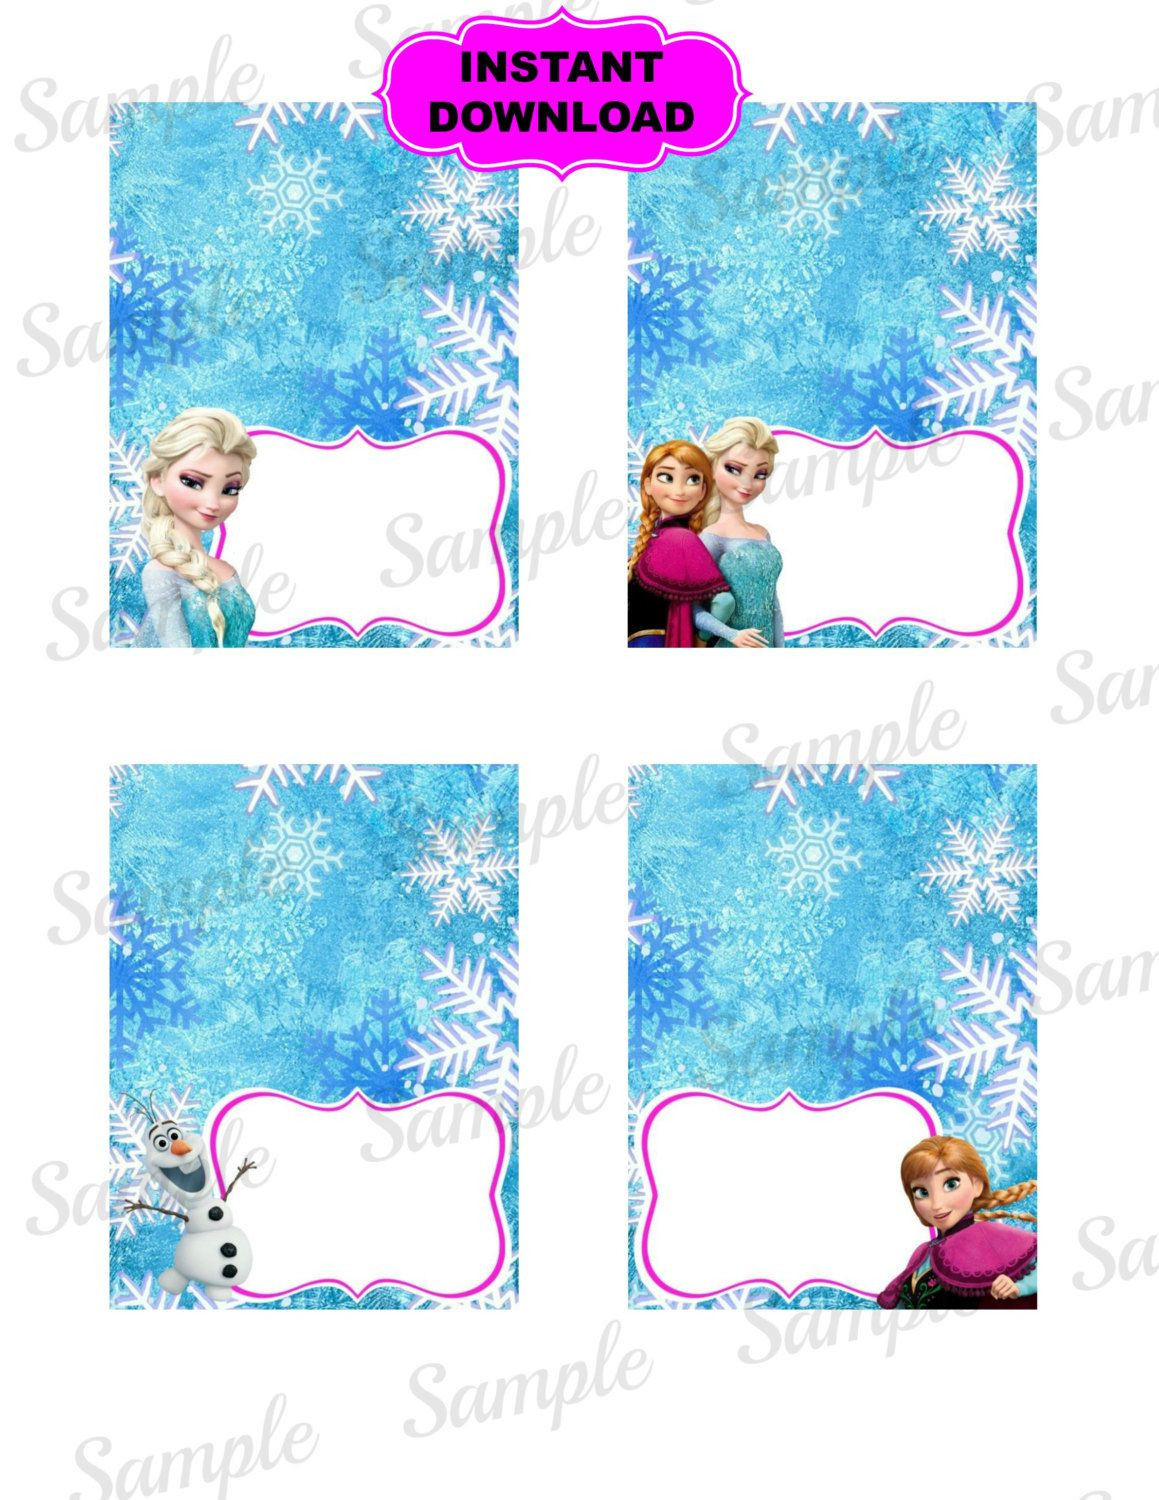 Frozen Free Printable Food Labels Frozen Food Tent Princess Printable Disney by Kidspartypixel